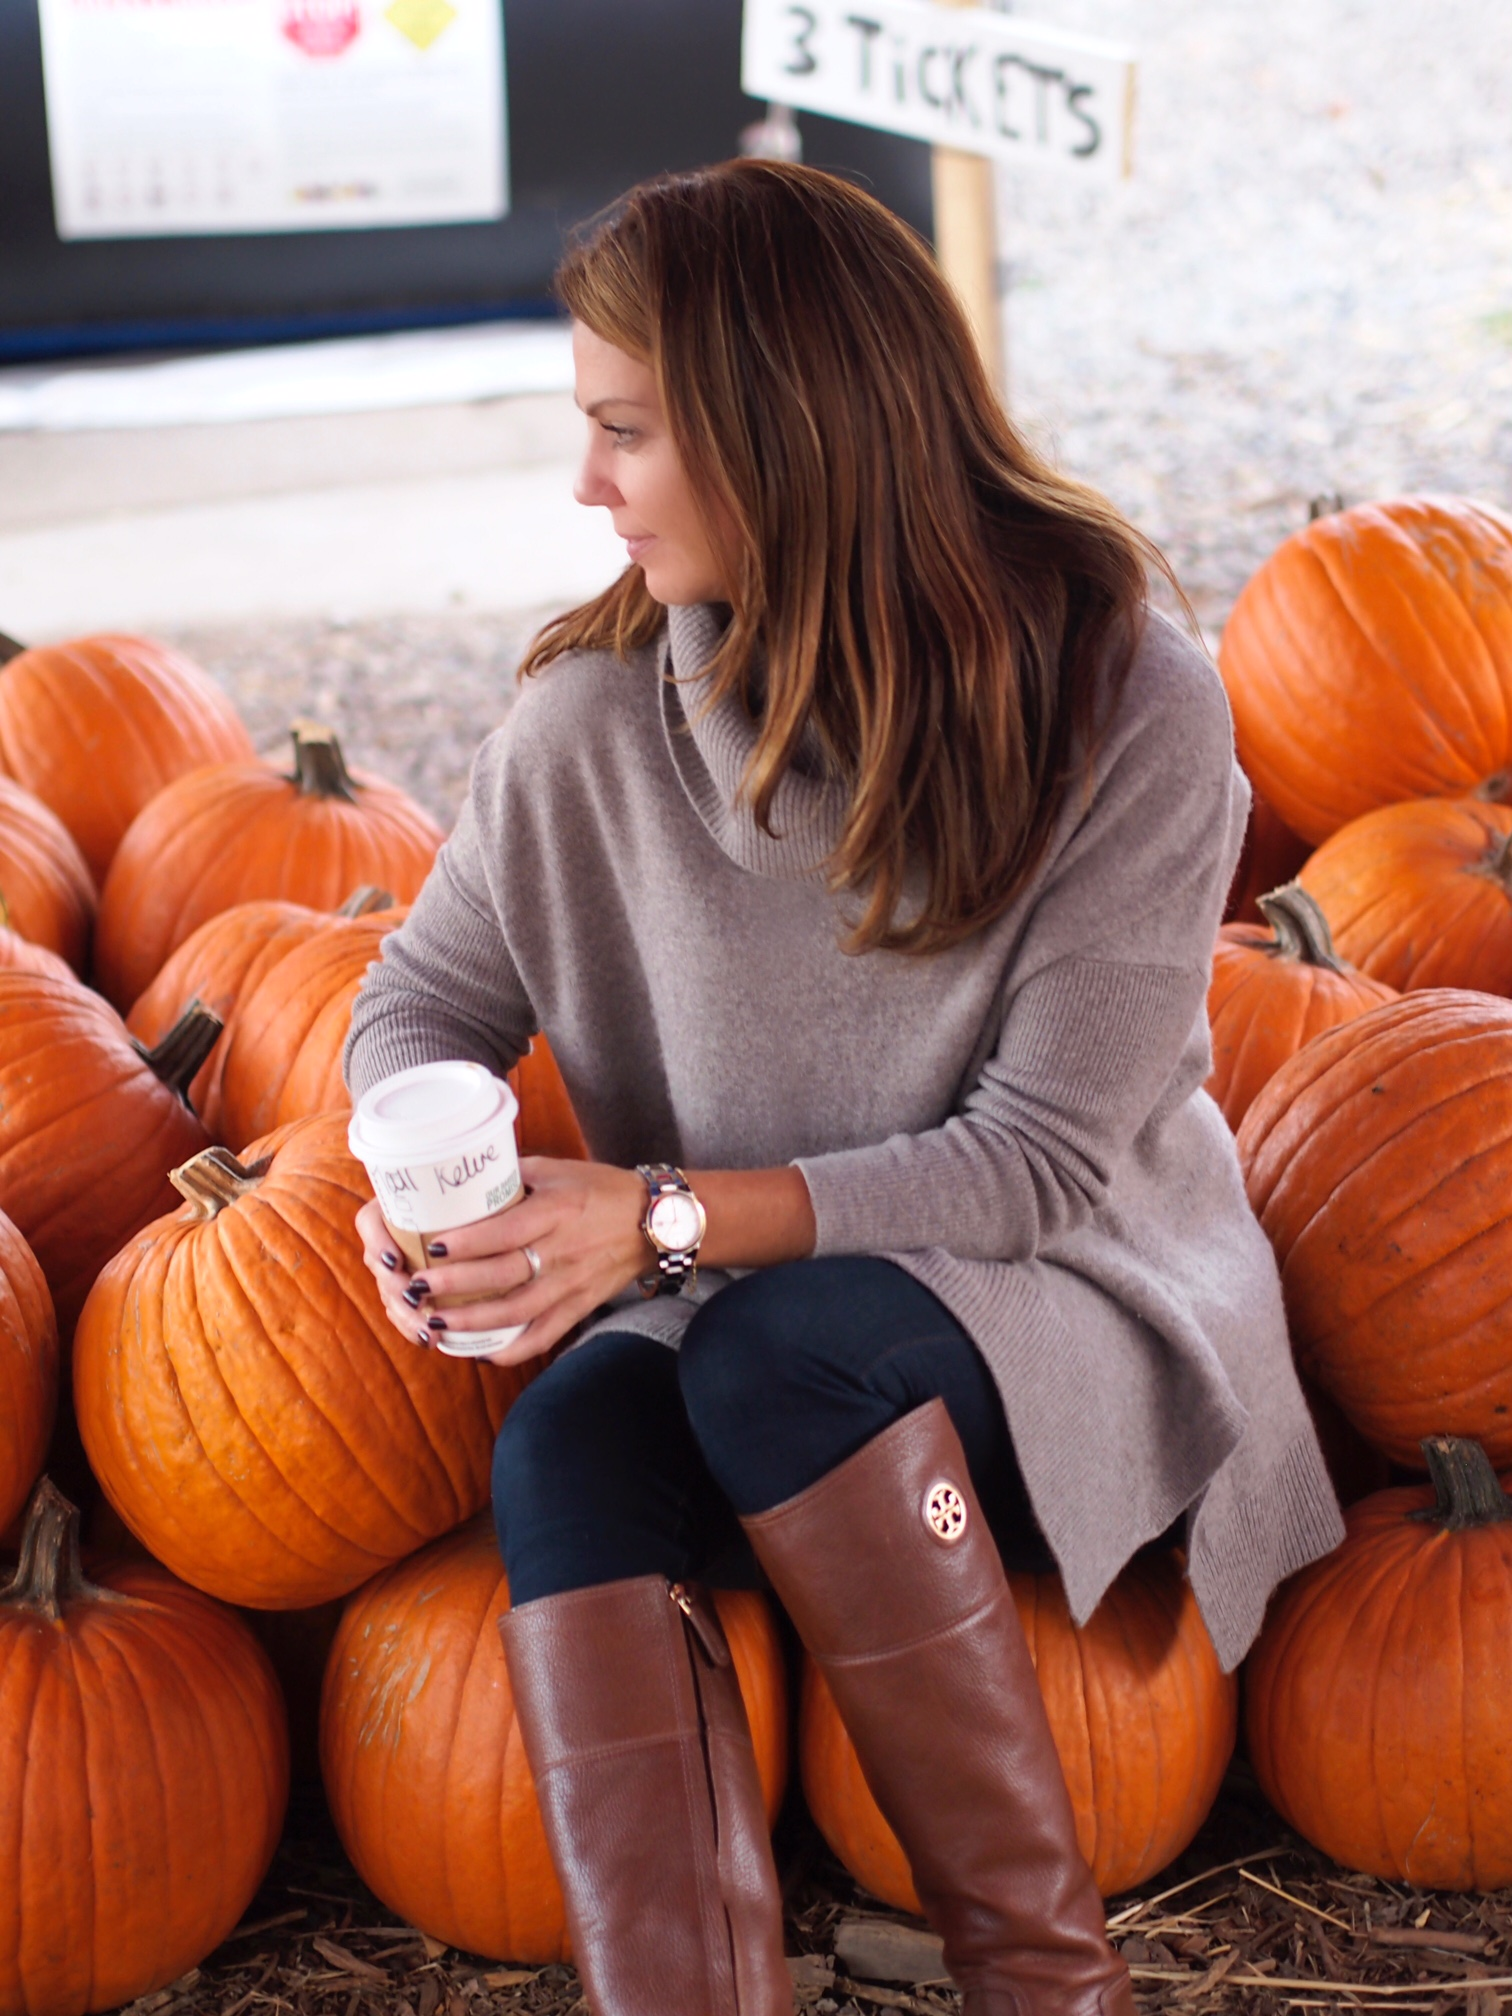 Sitting, Pumpkins, Fall, Starbucks, coffee, fall, Cashmere, burberry, Boots, Tory Burch